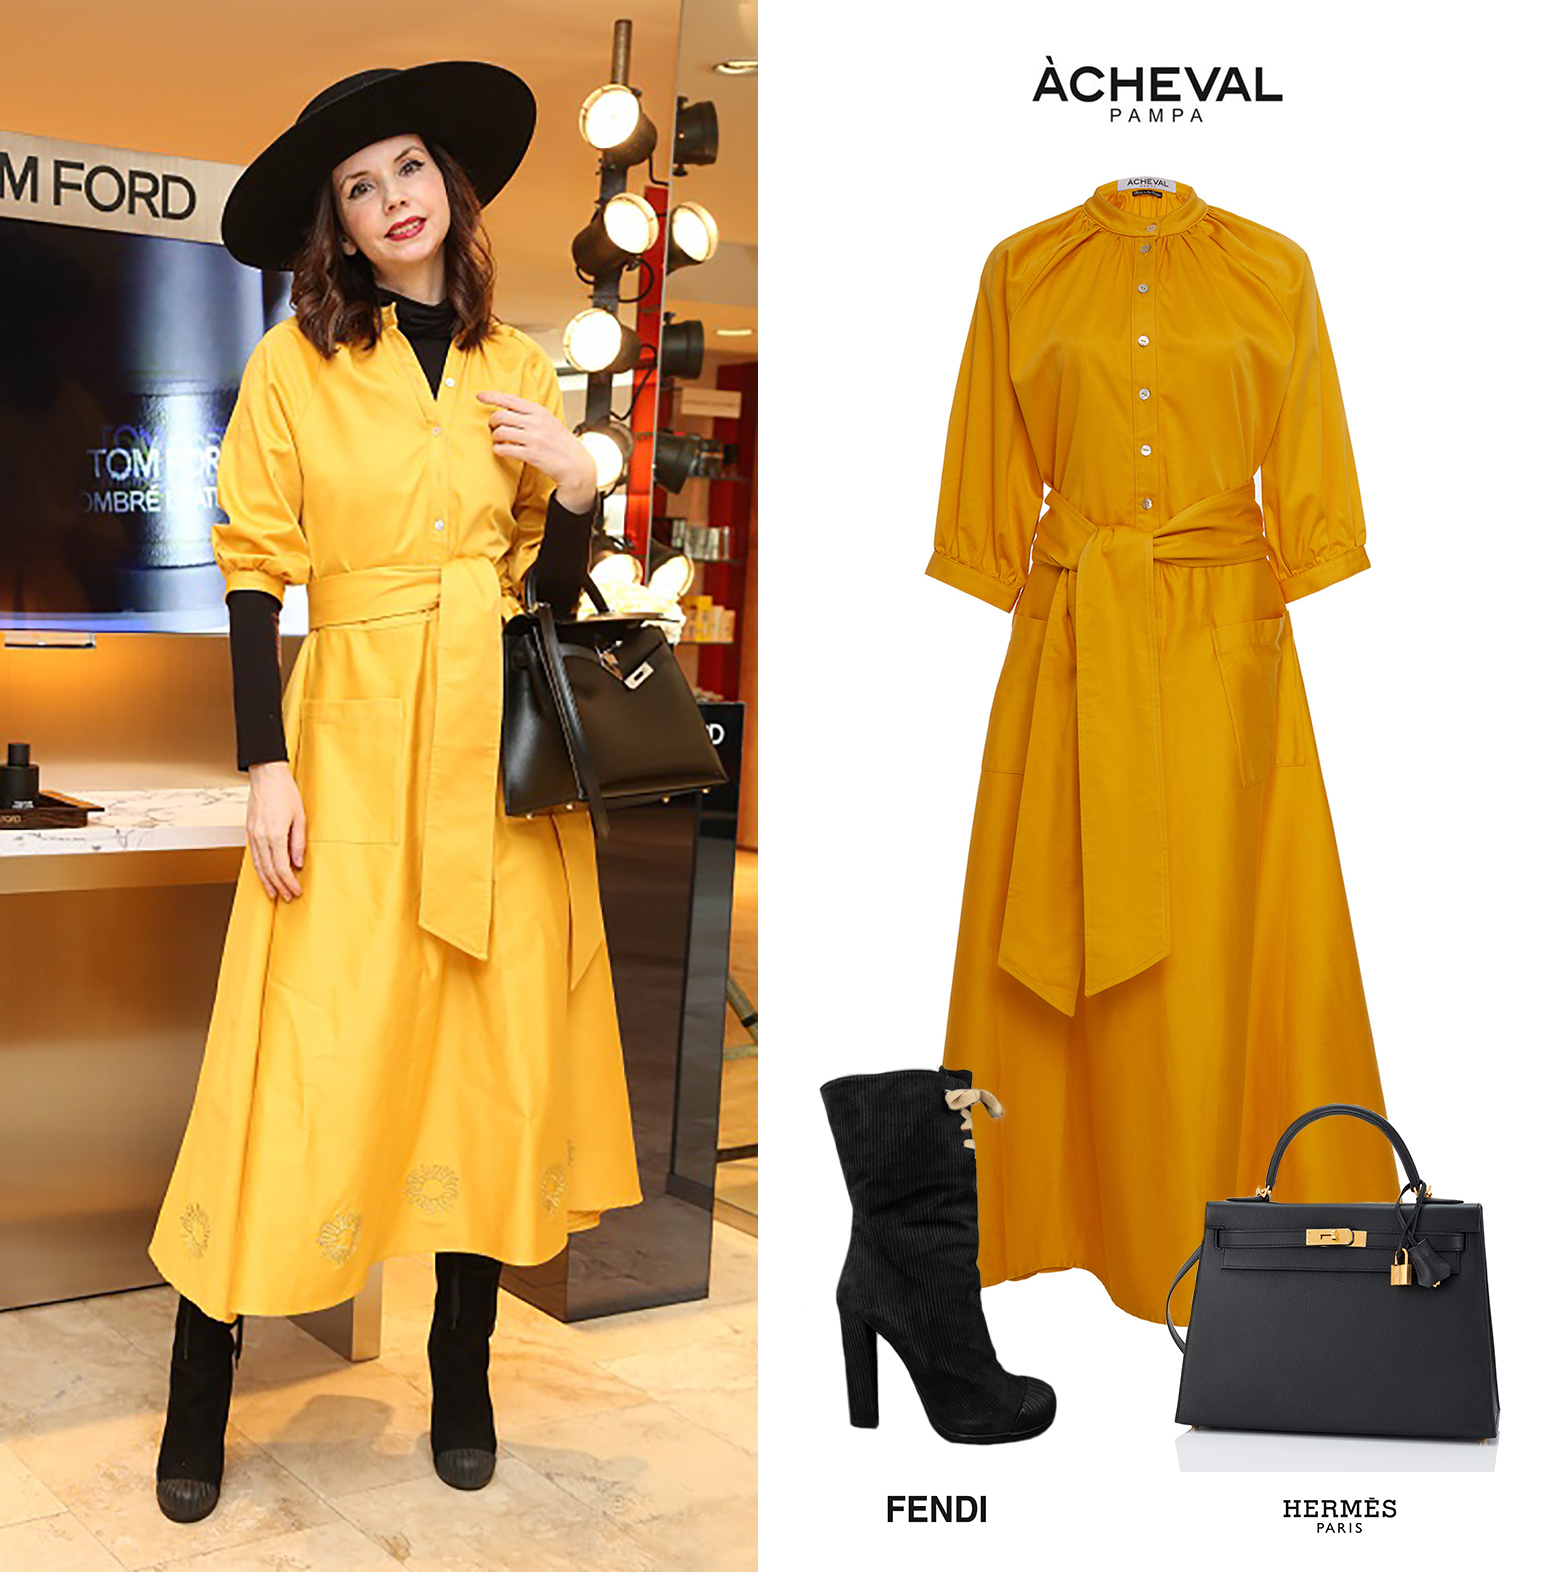 Marina_Achaval_Tom_Ford_Beauty_Acheval_Pampa_Yellow_Argentina_Dress_Face_Lace_Up_Boots_Botas_Vestido_Amarillo_Cartera_Kelly_Negra_Black_Bag_Hermes.jpg